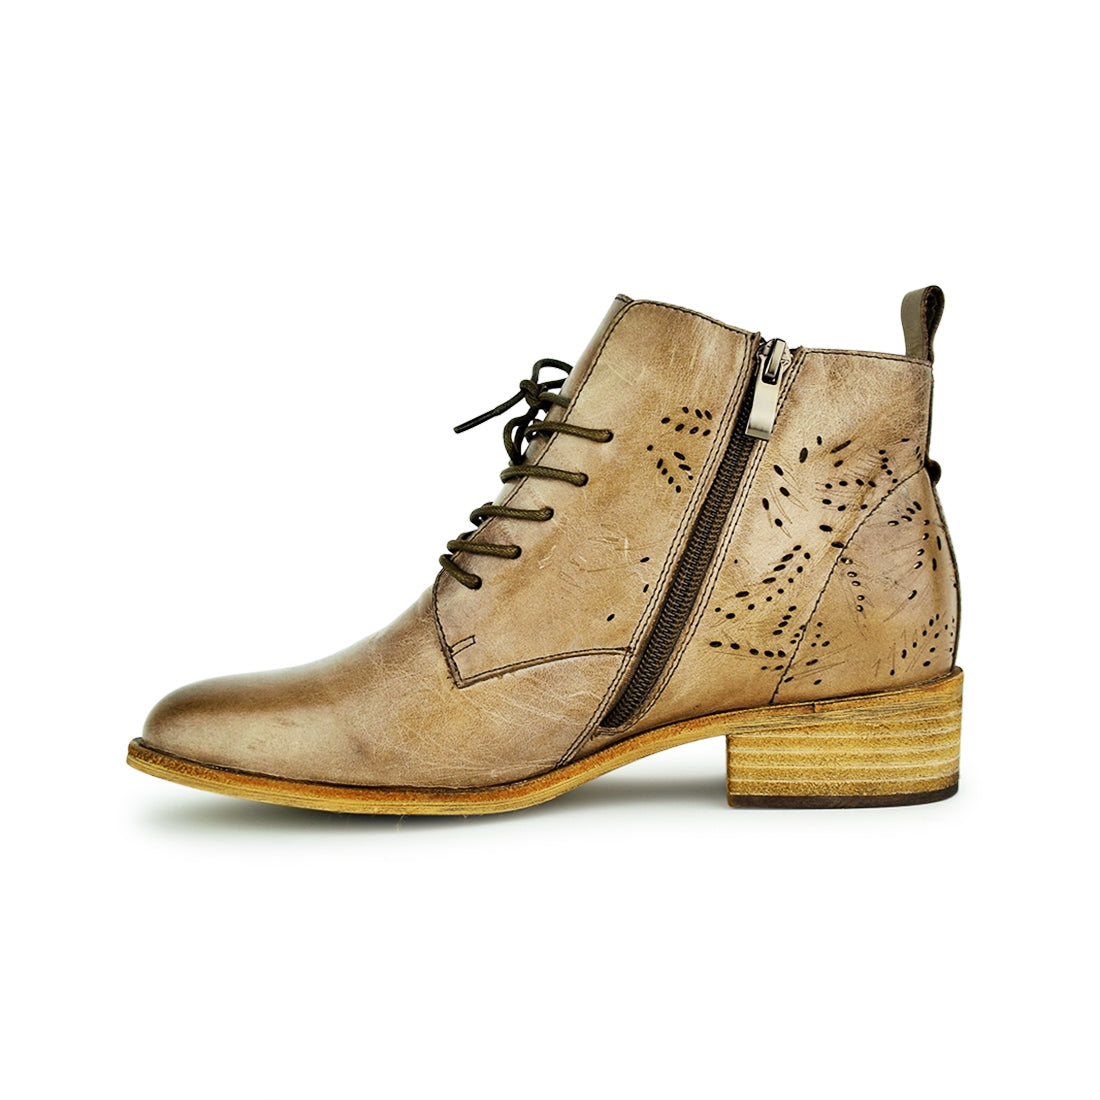 ROSSI - Warwick Dawson Ankle Boots Taupe Suede